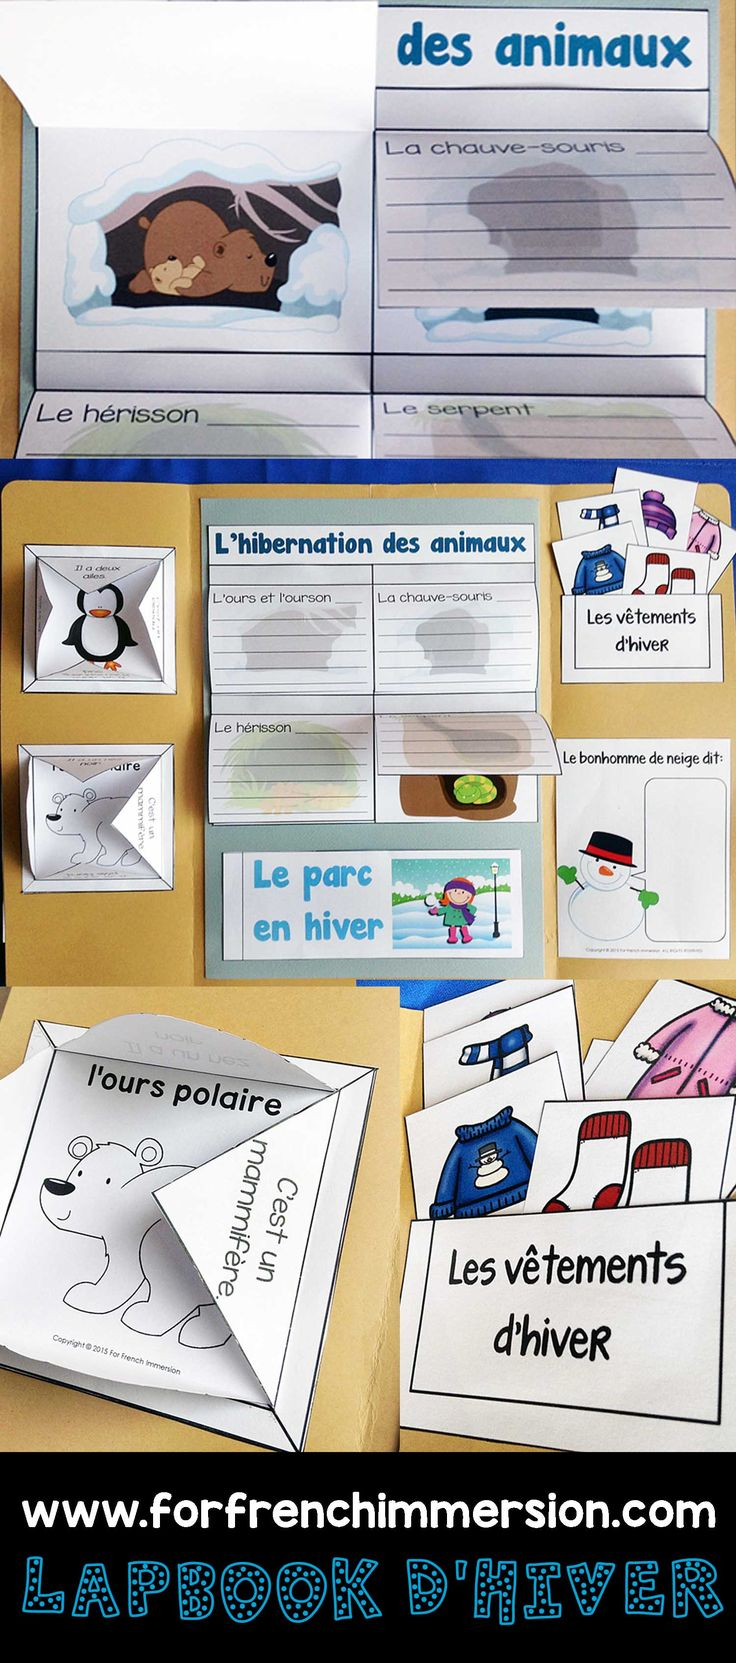 French Winter Lapbook – lapbook d'hiver: fun, interactive activities to practive vocabulary for winter clothing, writing prompts, hibernation of animals flaps, and more!